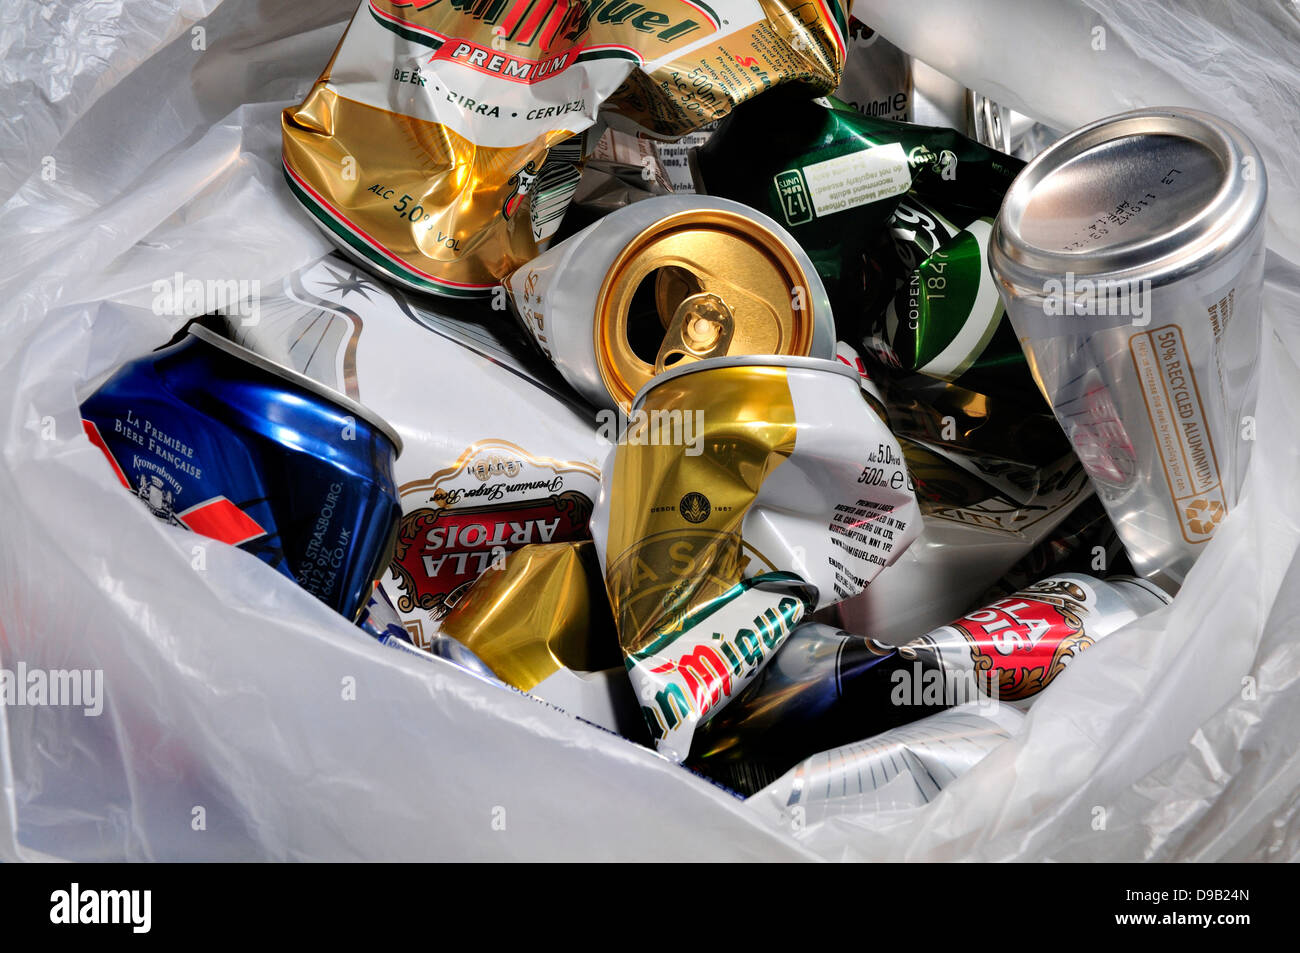 Beer cans in plastic bag to be recycled - Stock Image